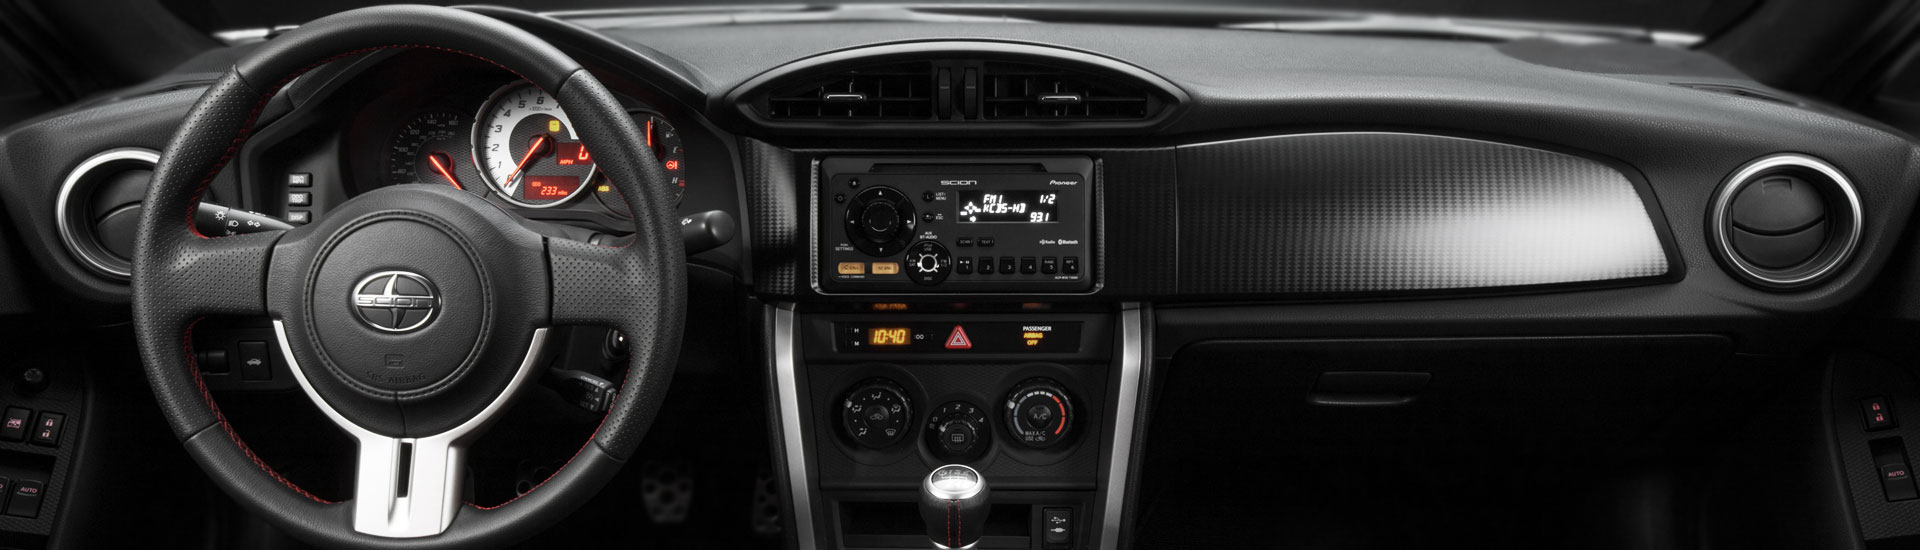 2004 Scion xB Custom Dash Kits